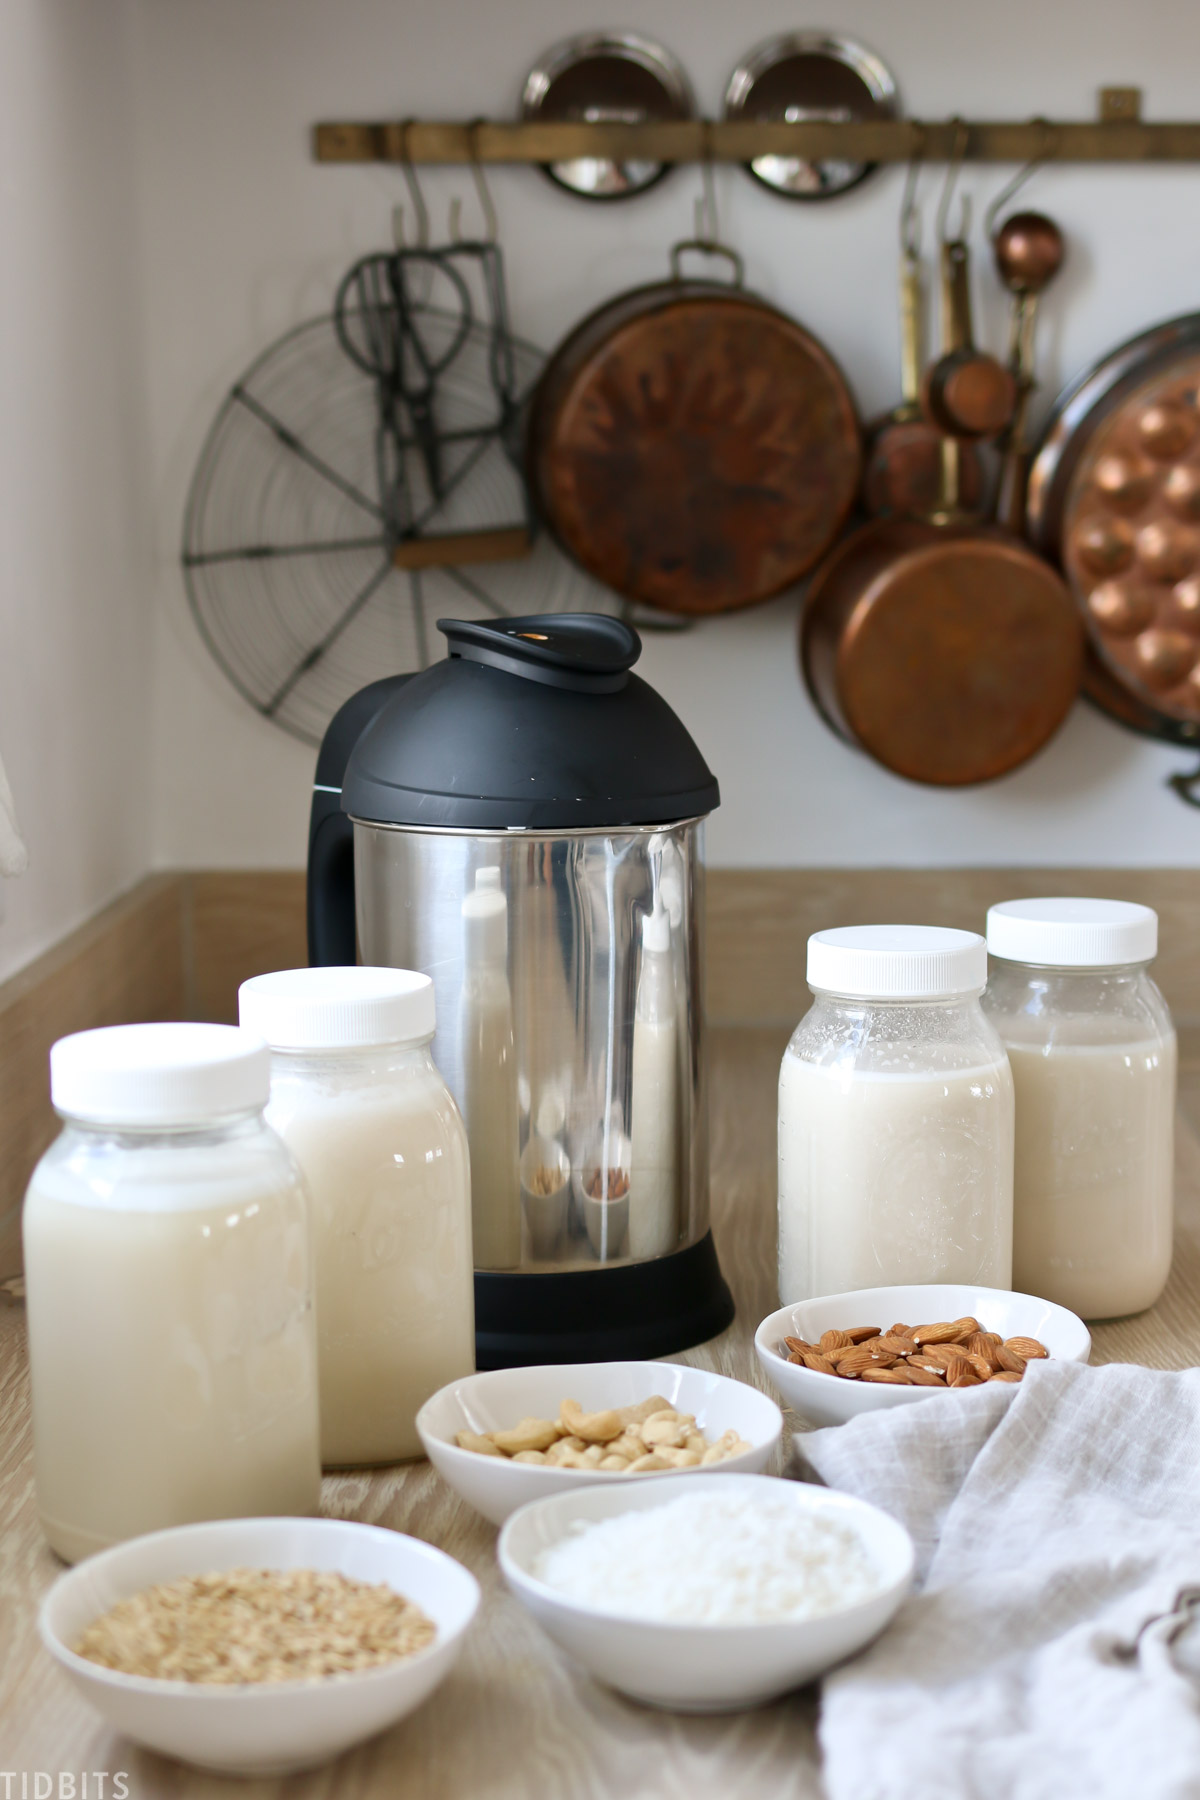 Using the almond cow to make plant based nut milks.